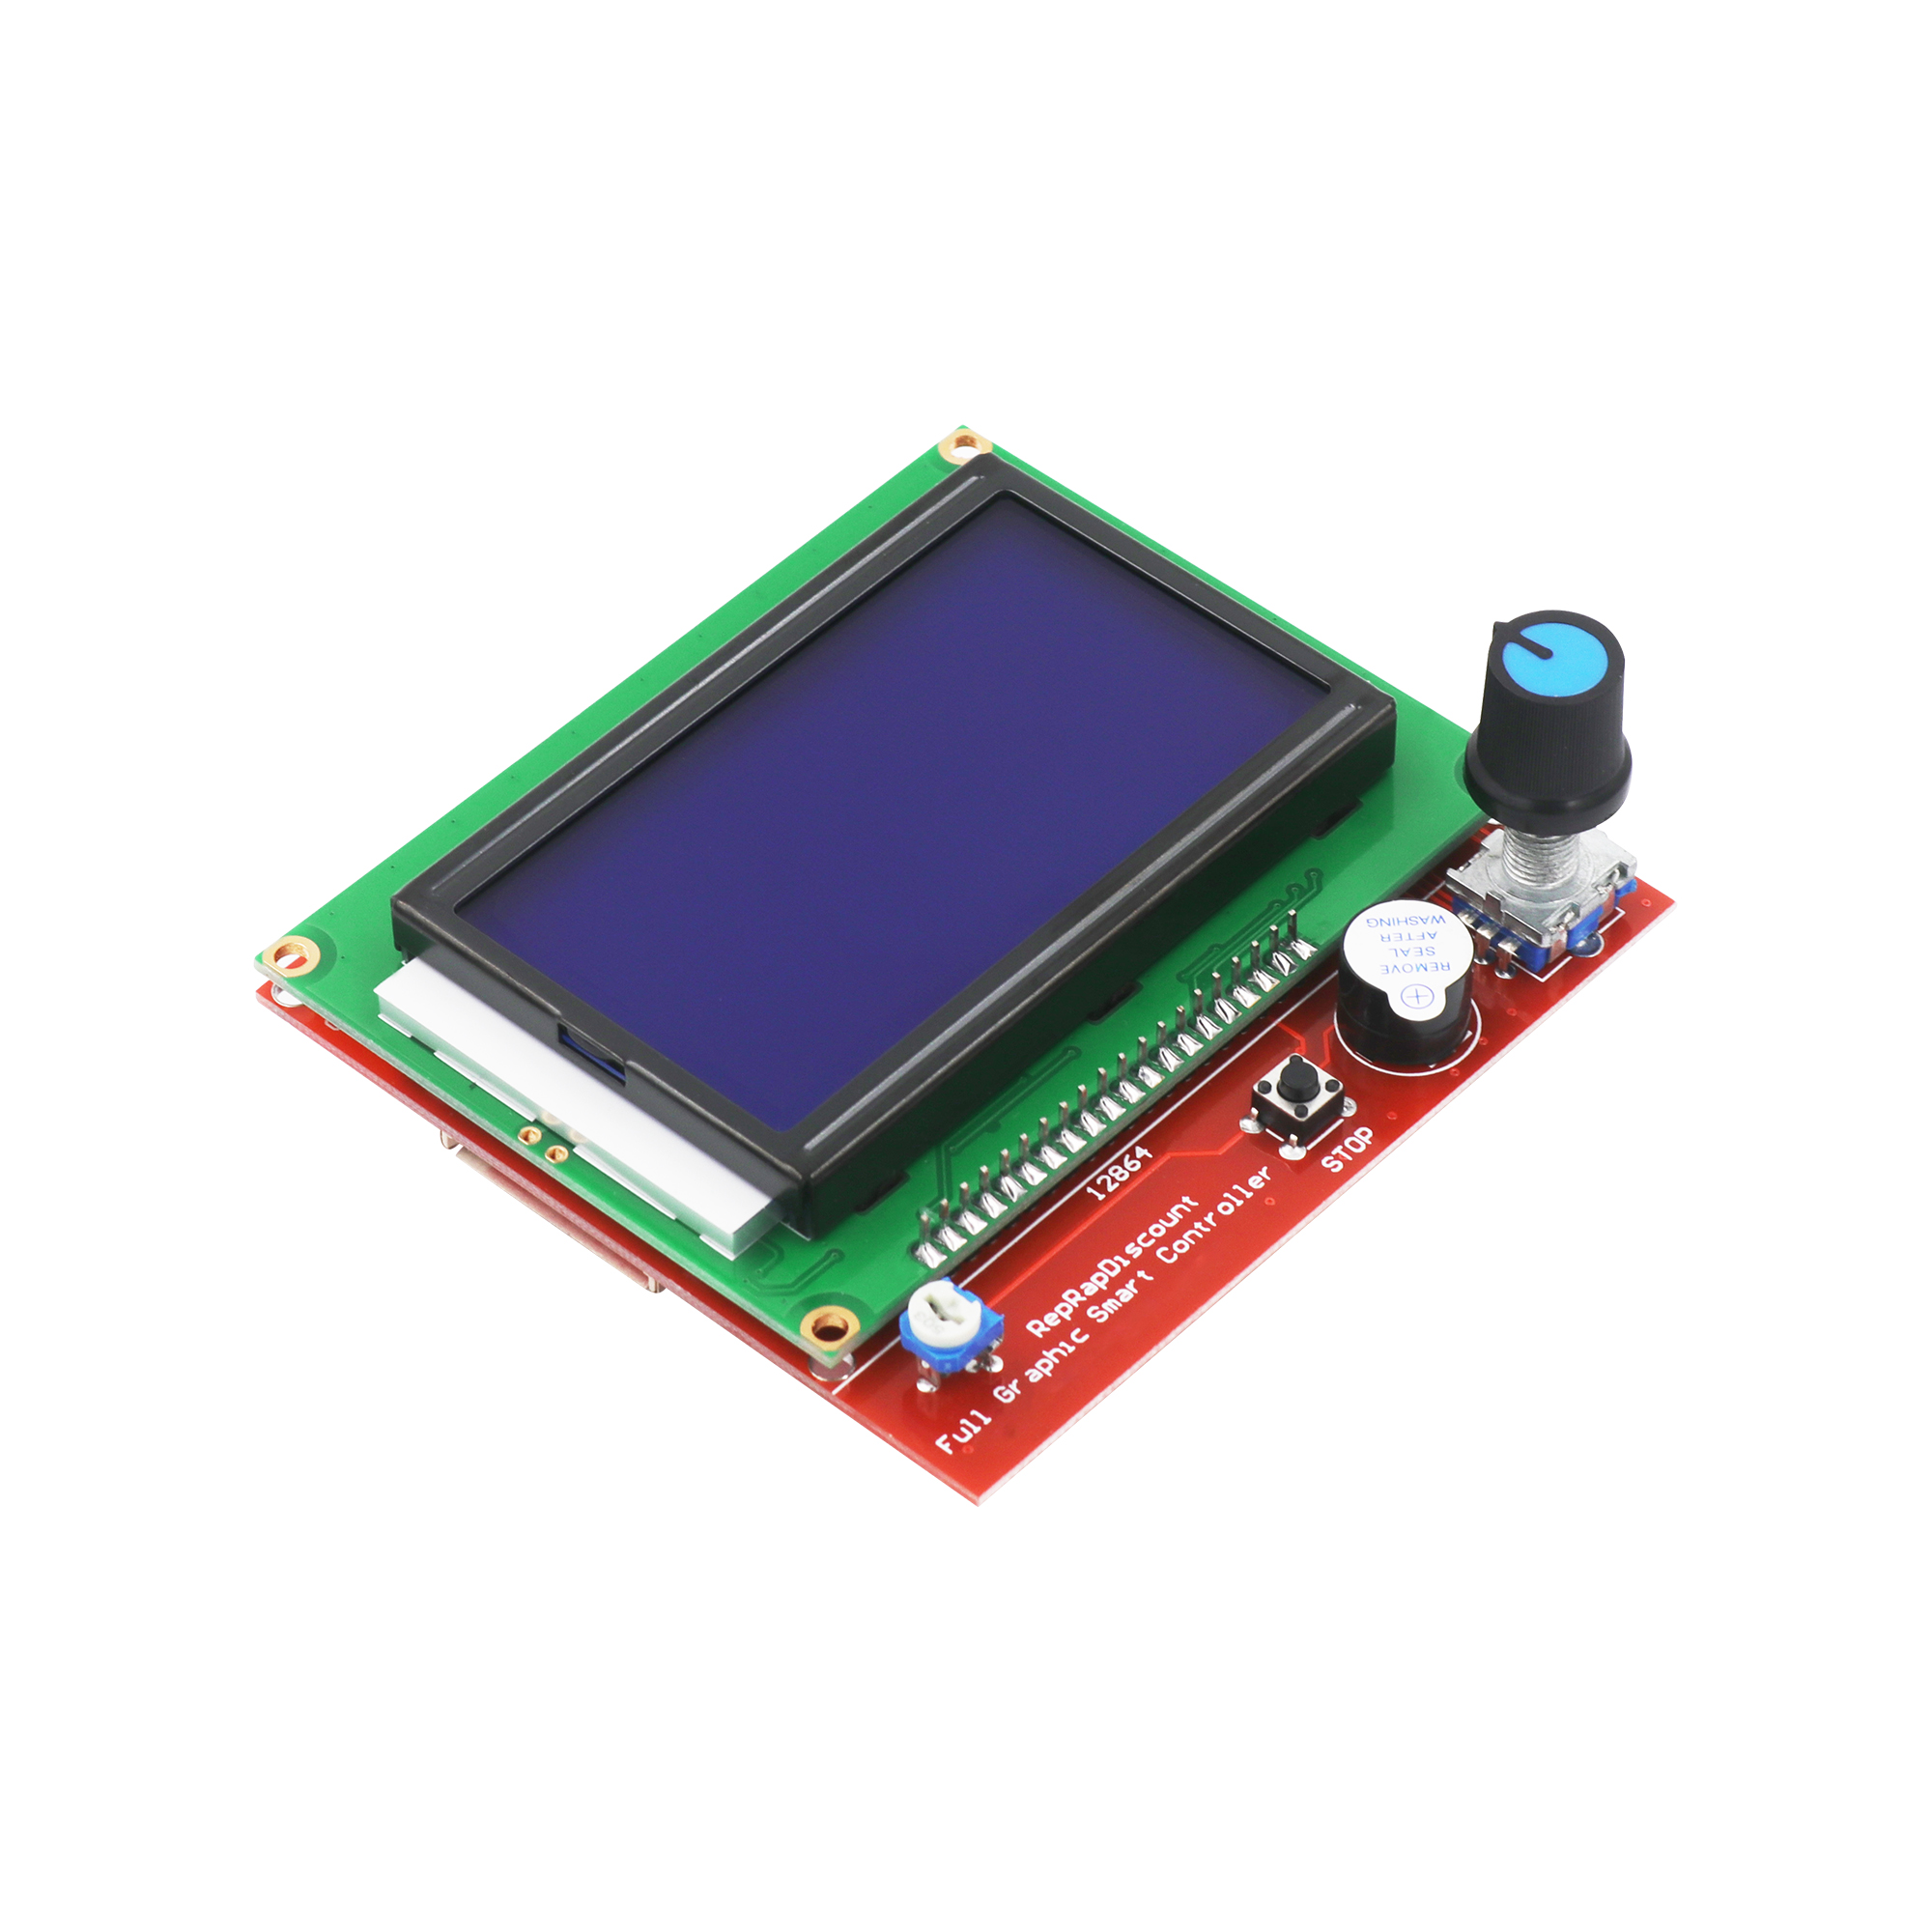 Image 3 - CNC 3D Printer Kit with Mega 2560 Board,RAMPS 1.4,DRV8825,LCD 12864,Heatbed MK2b for Arduino-in Integrated Circuits from Electronic Components & Supplies